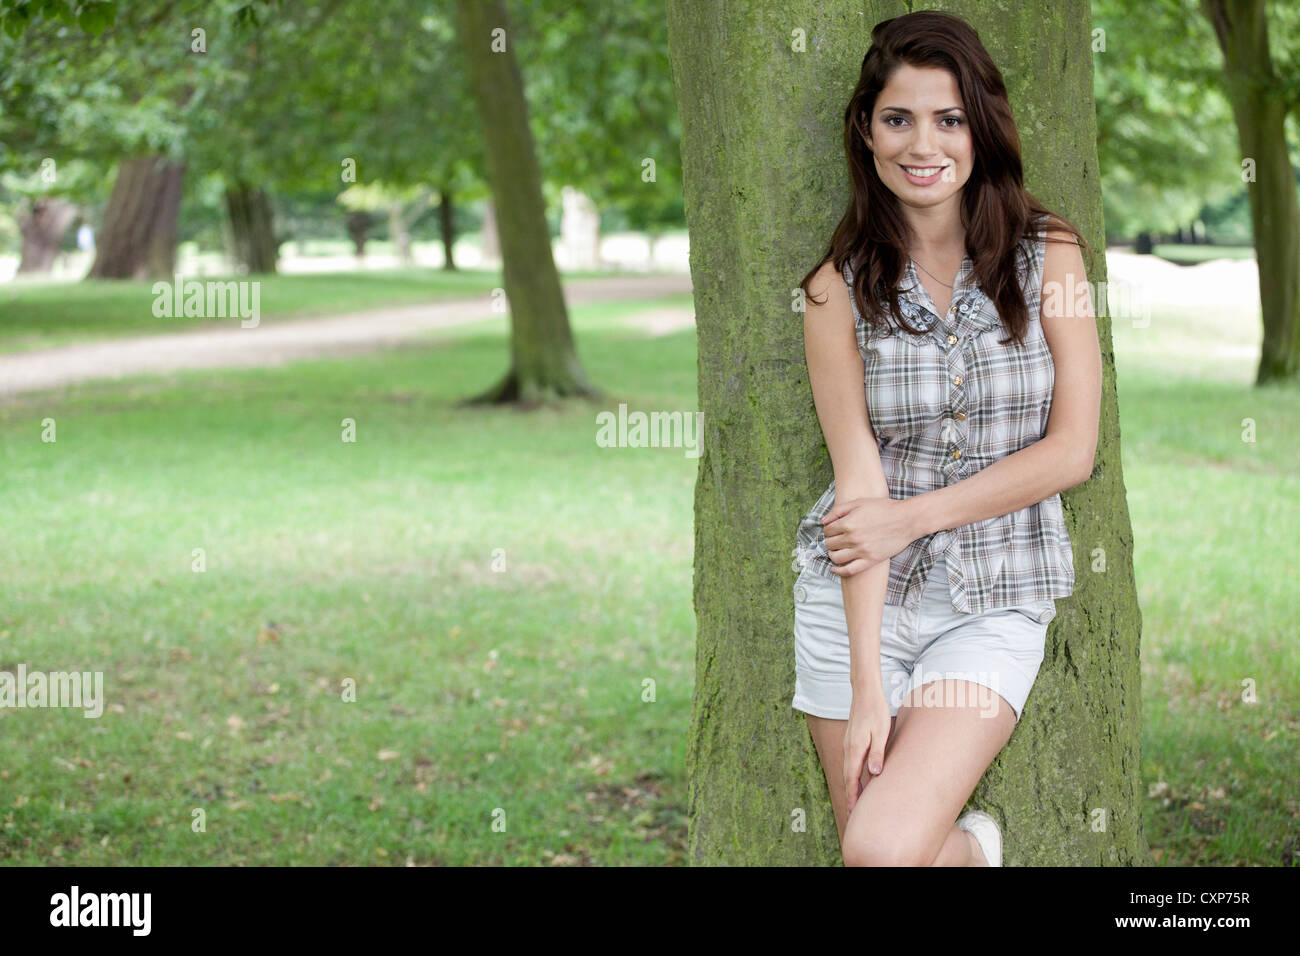 Woman in a park - Stock Image